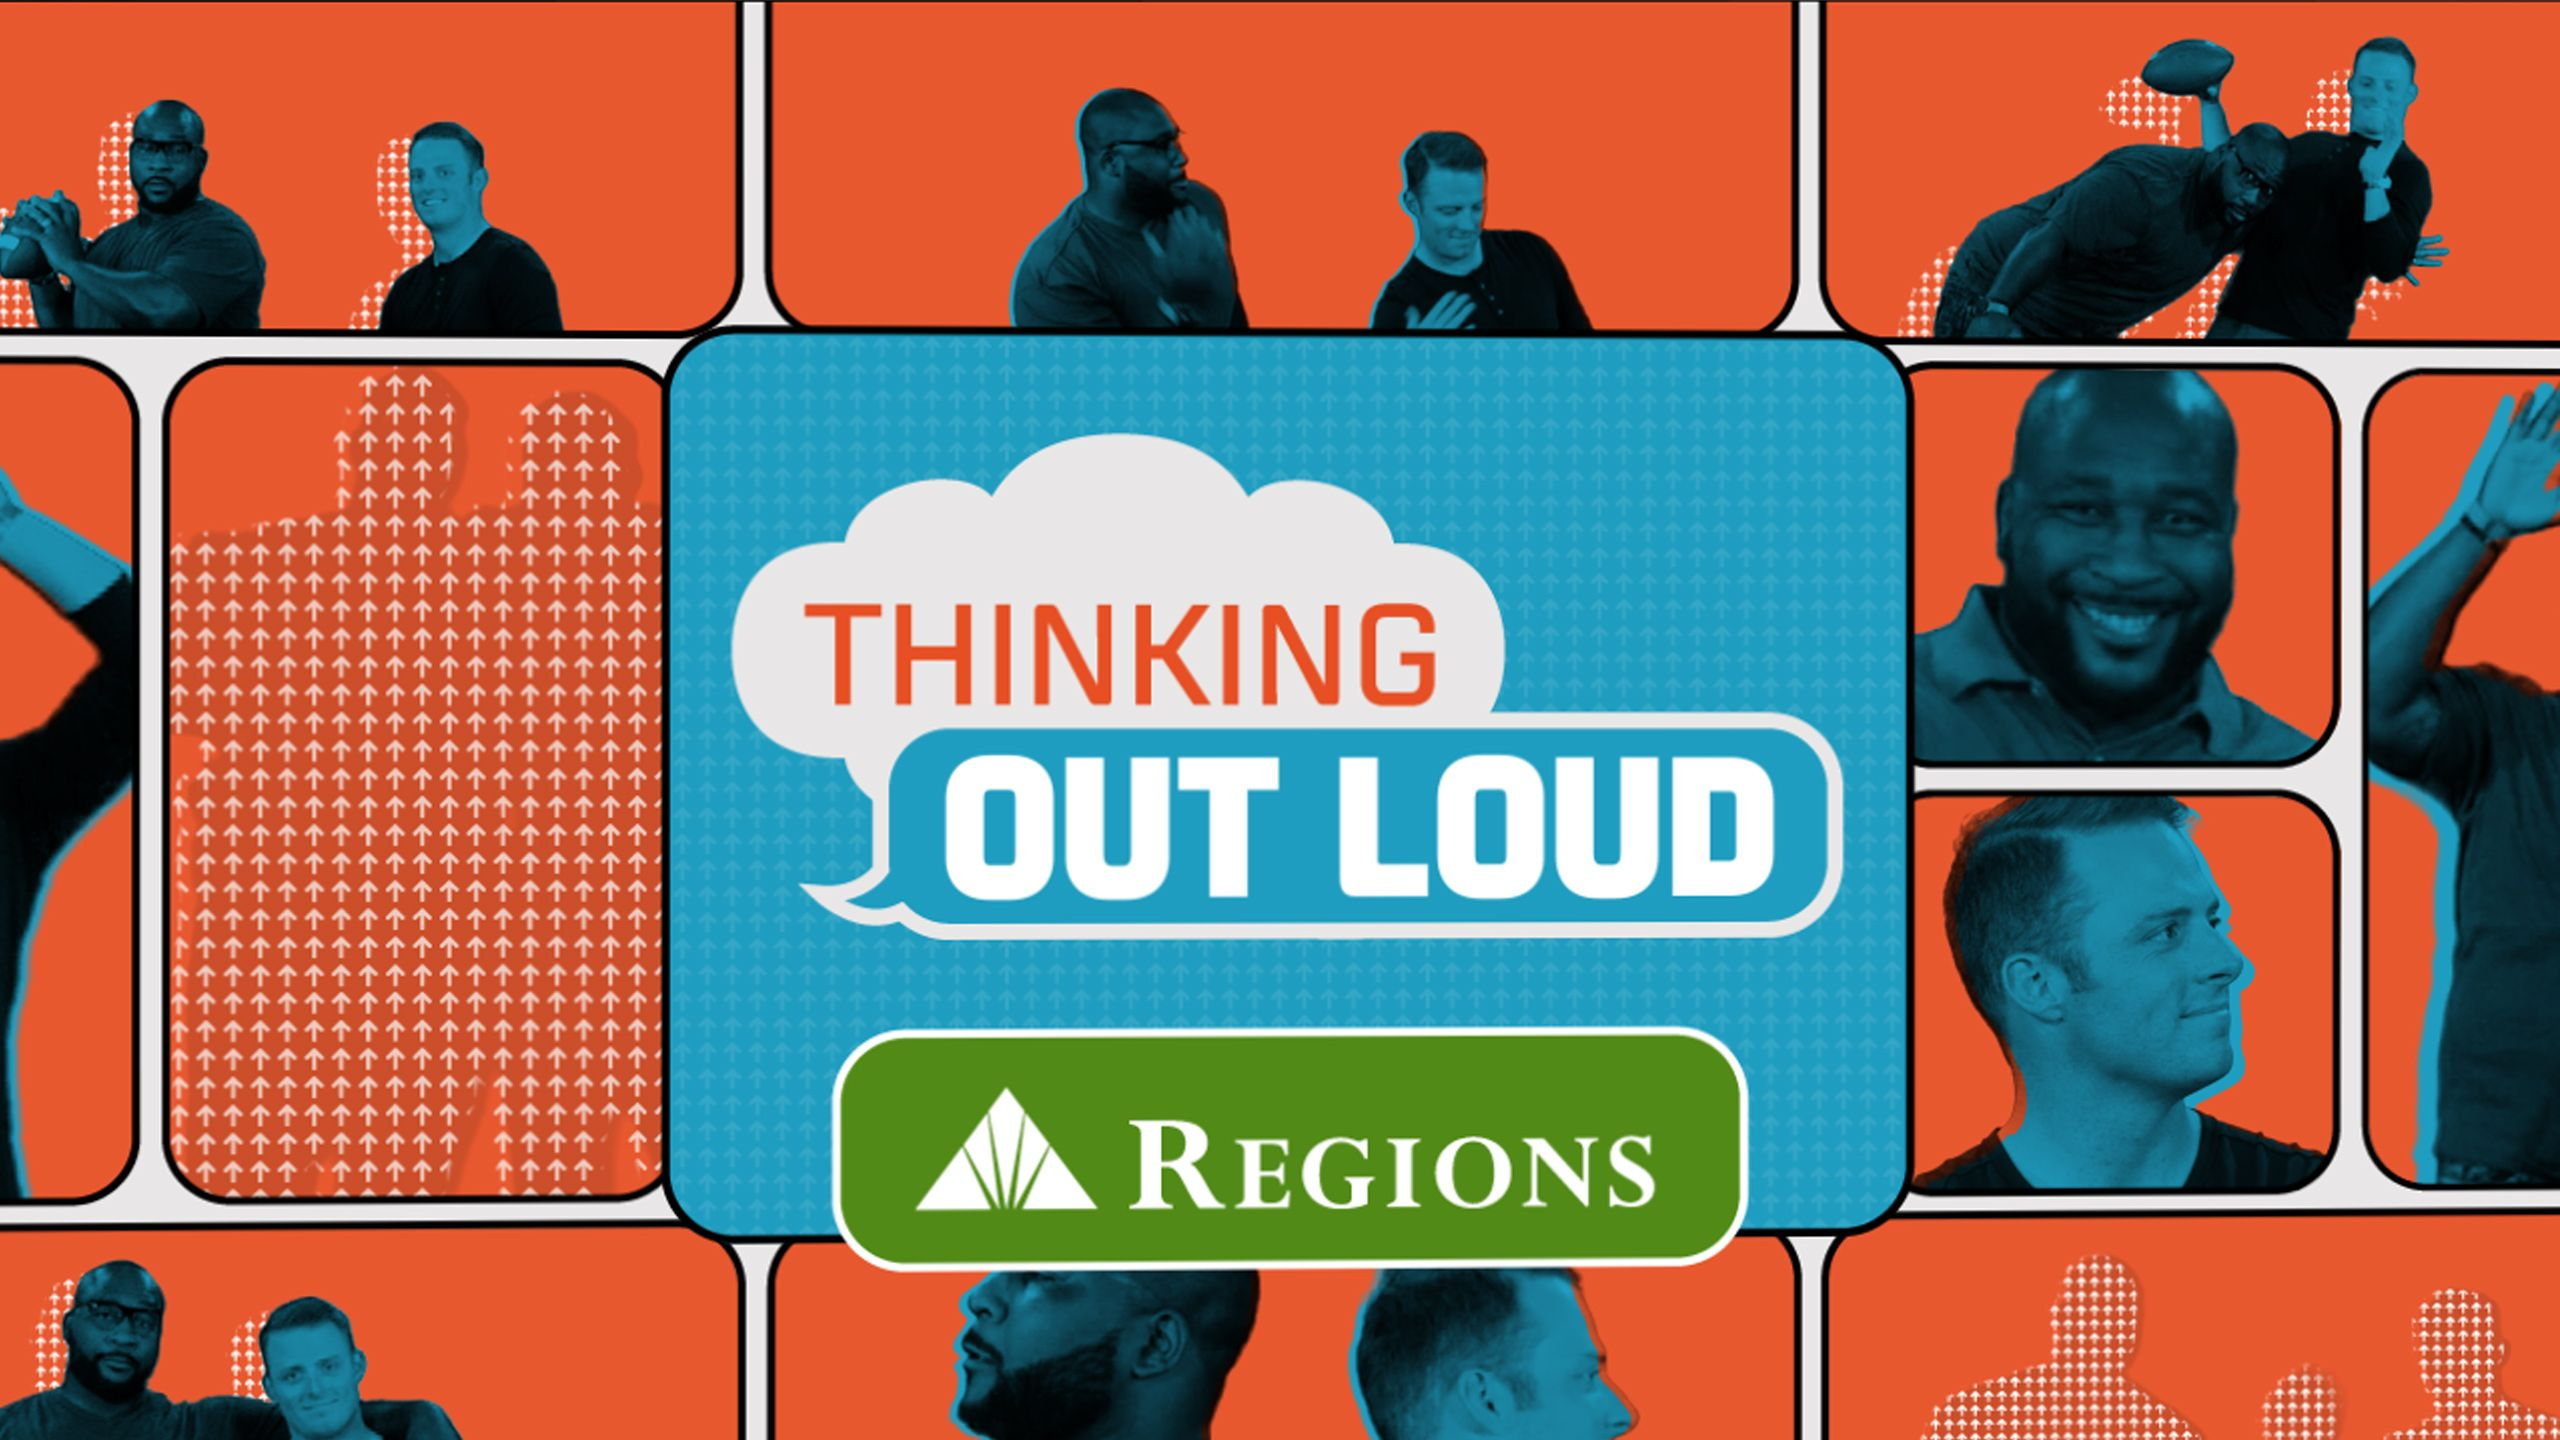 Mon, 10/16 - Thinking Out Loud Presented by Regions Bank